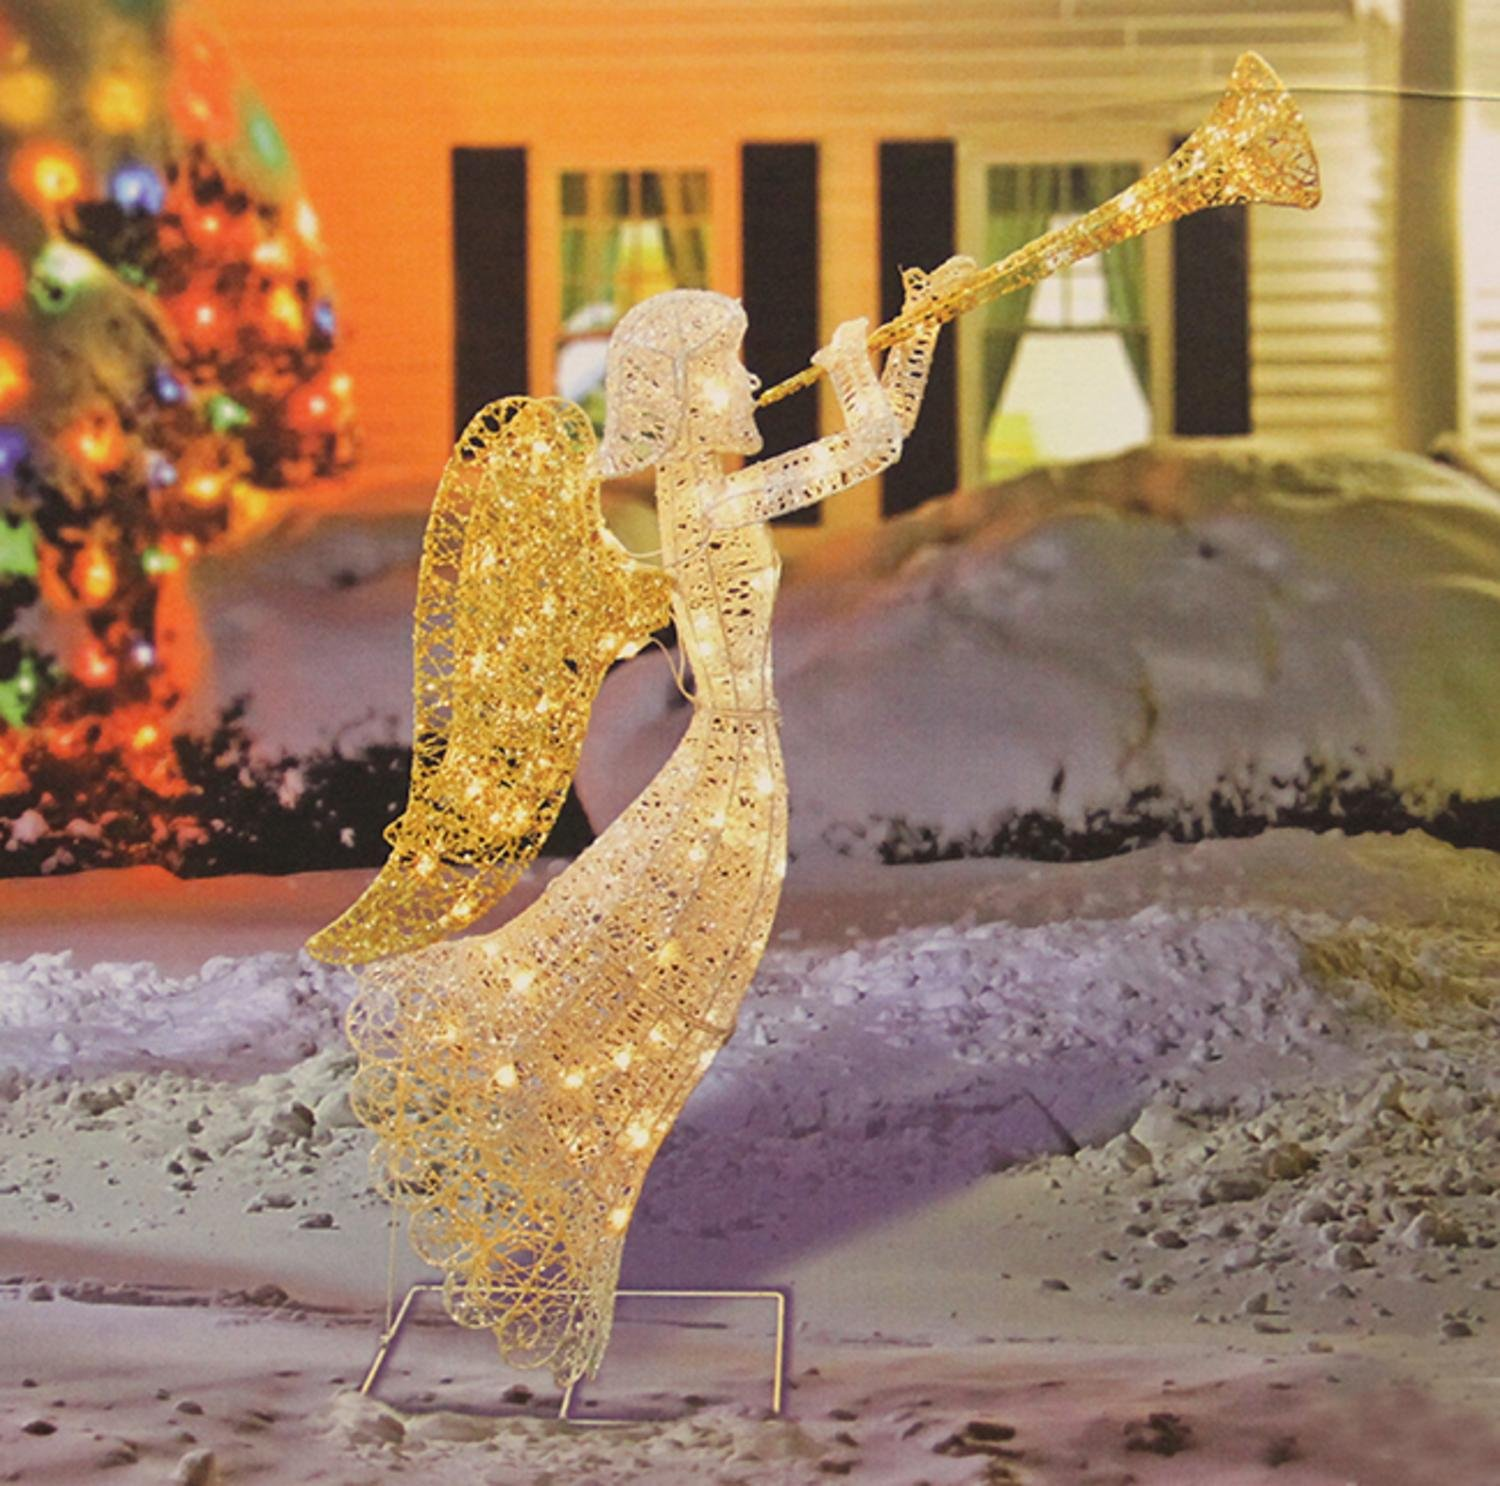 amazoncom penn 58 397w 066 48 glittered trumpeting angel lighted christmas yard art decoration home kitchen - Amazon Outdoor Lighted Christmas Decorations